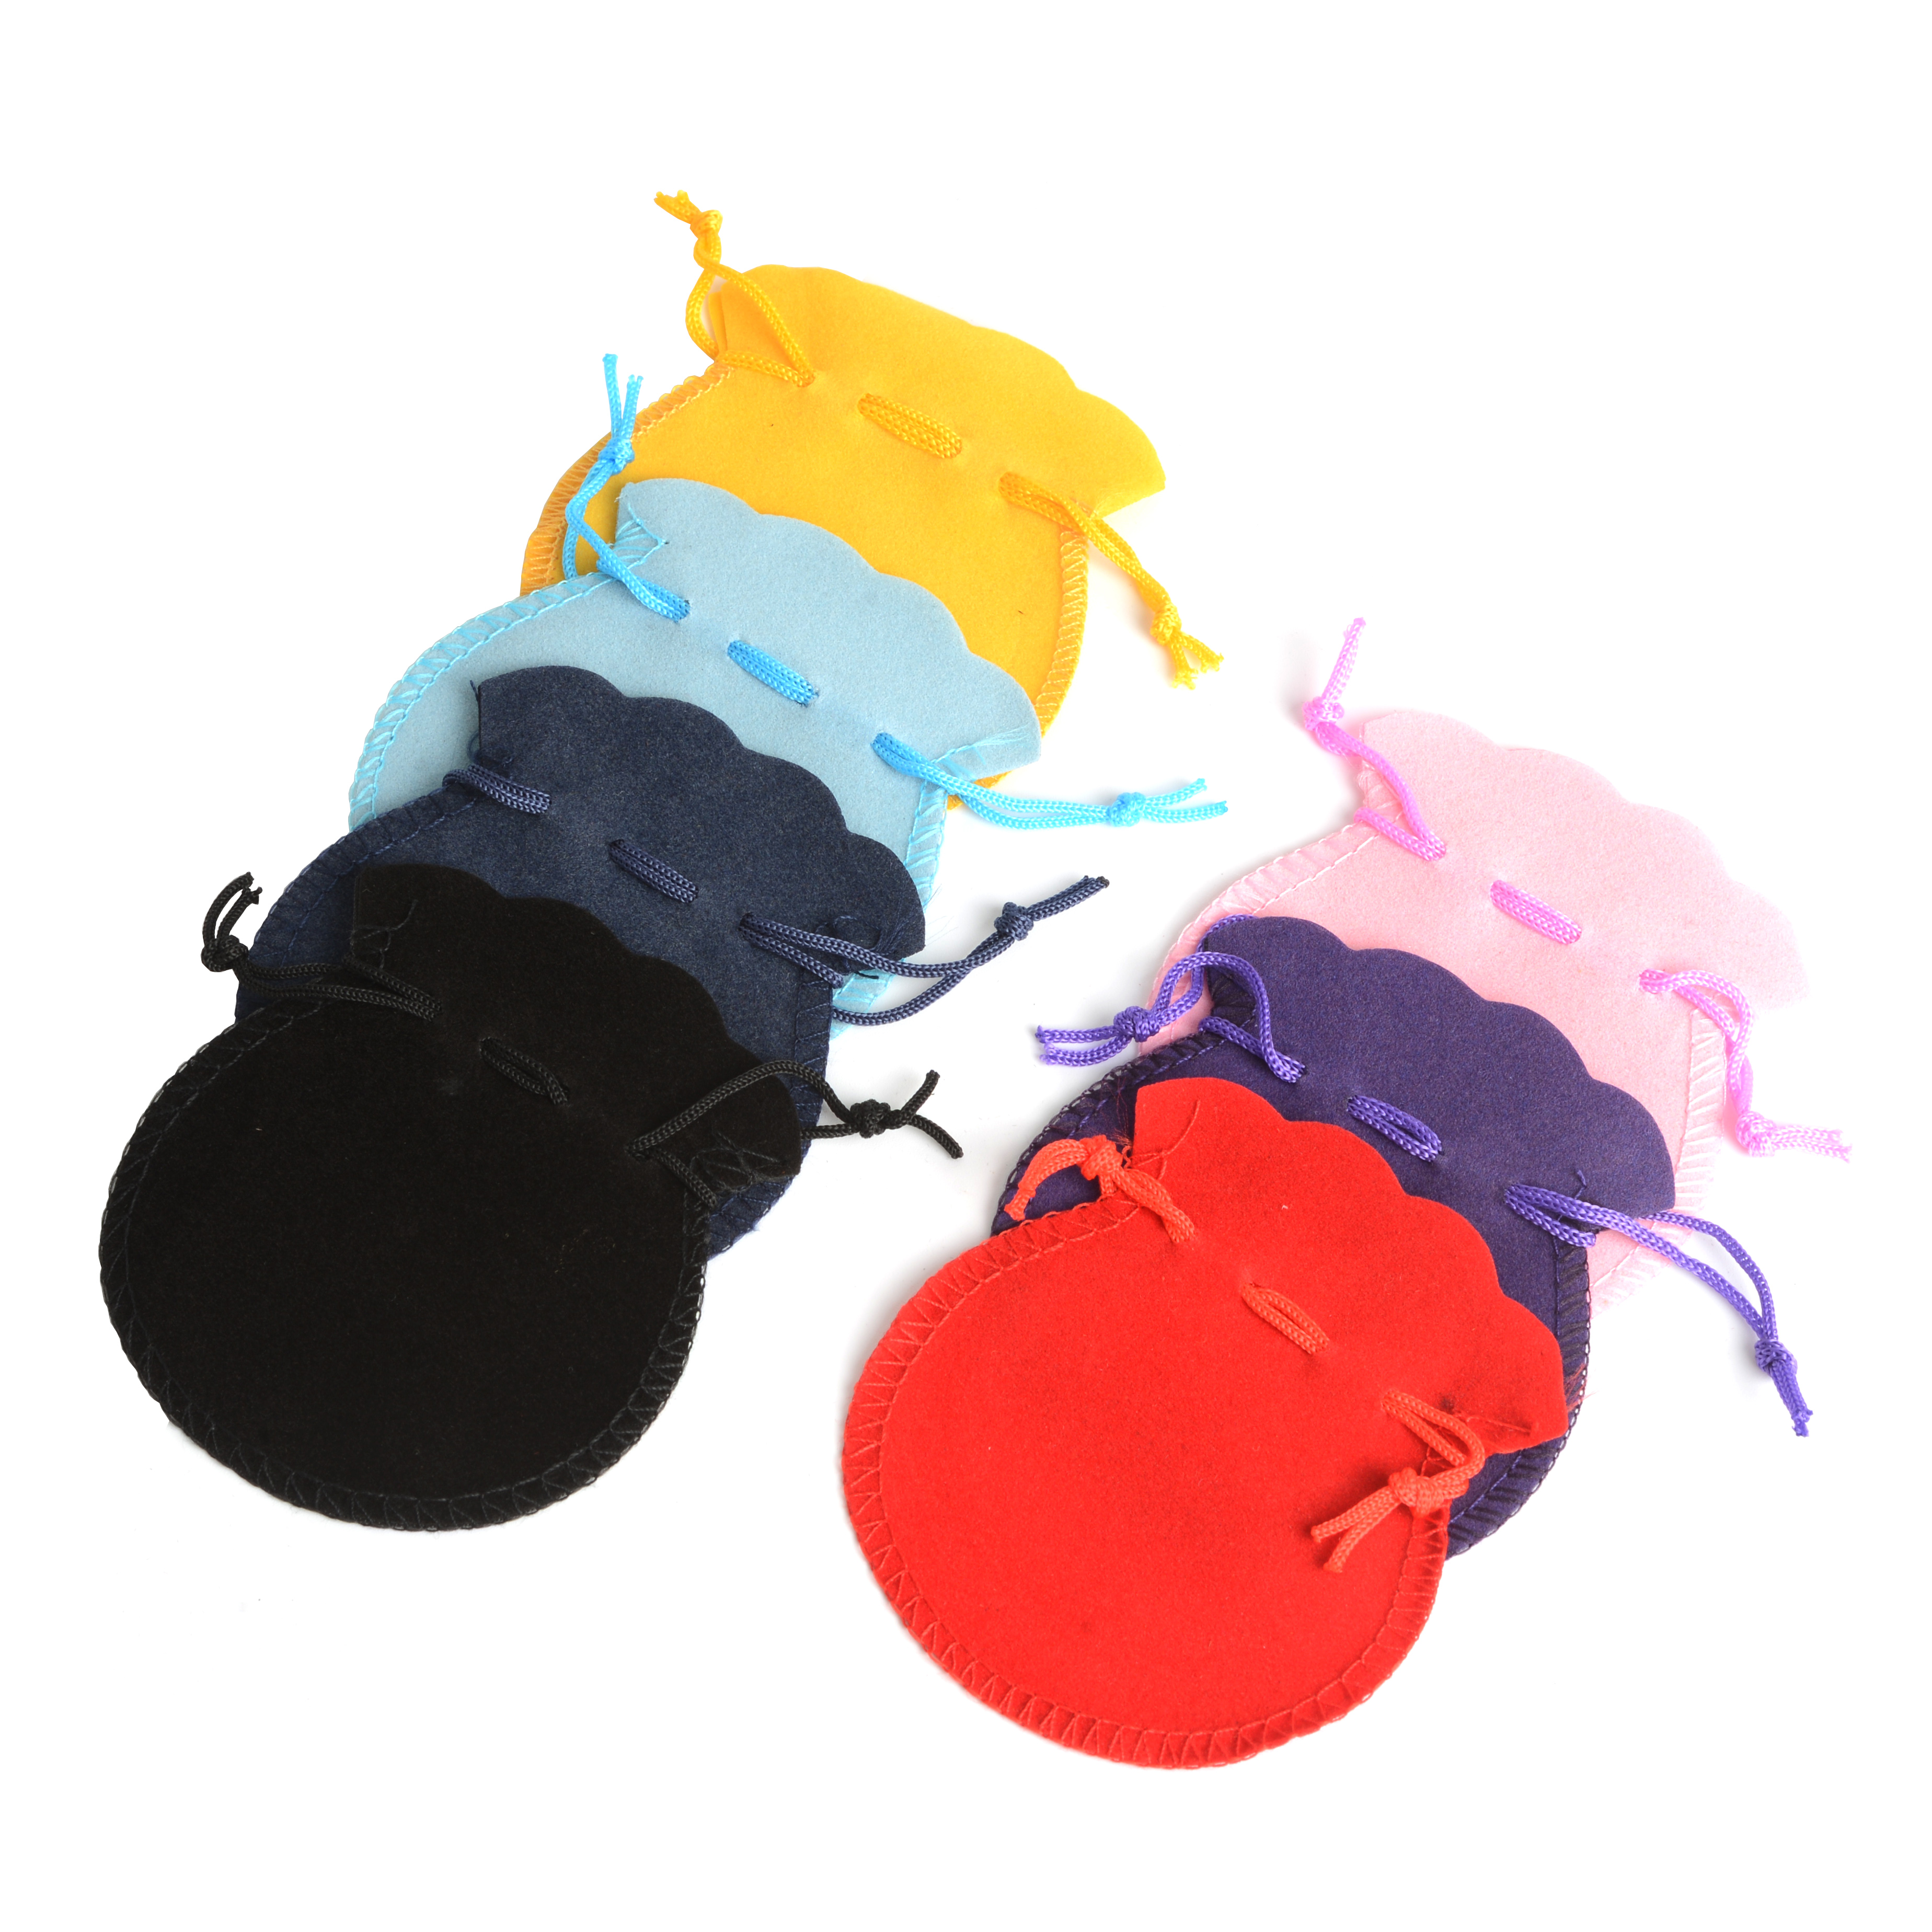 100pcs/lot Fashion 7*8cm 9*12cm Velvet Bag Drawstring Pouch Calabash Jewelry Packing Bags Wedding Christmas Party Gift Bag